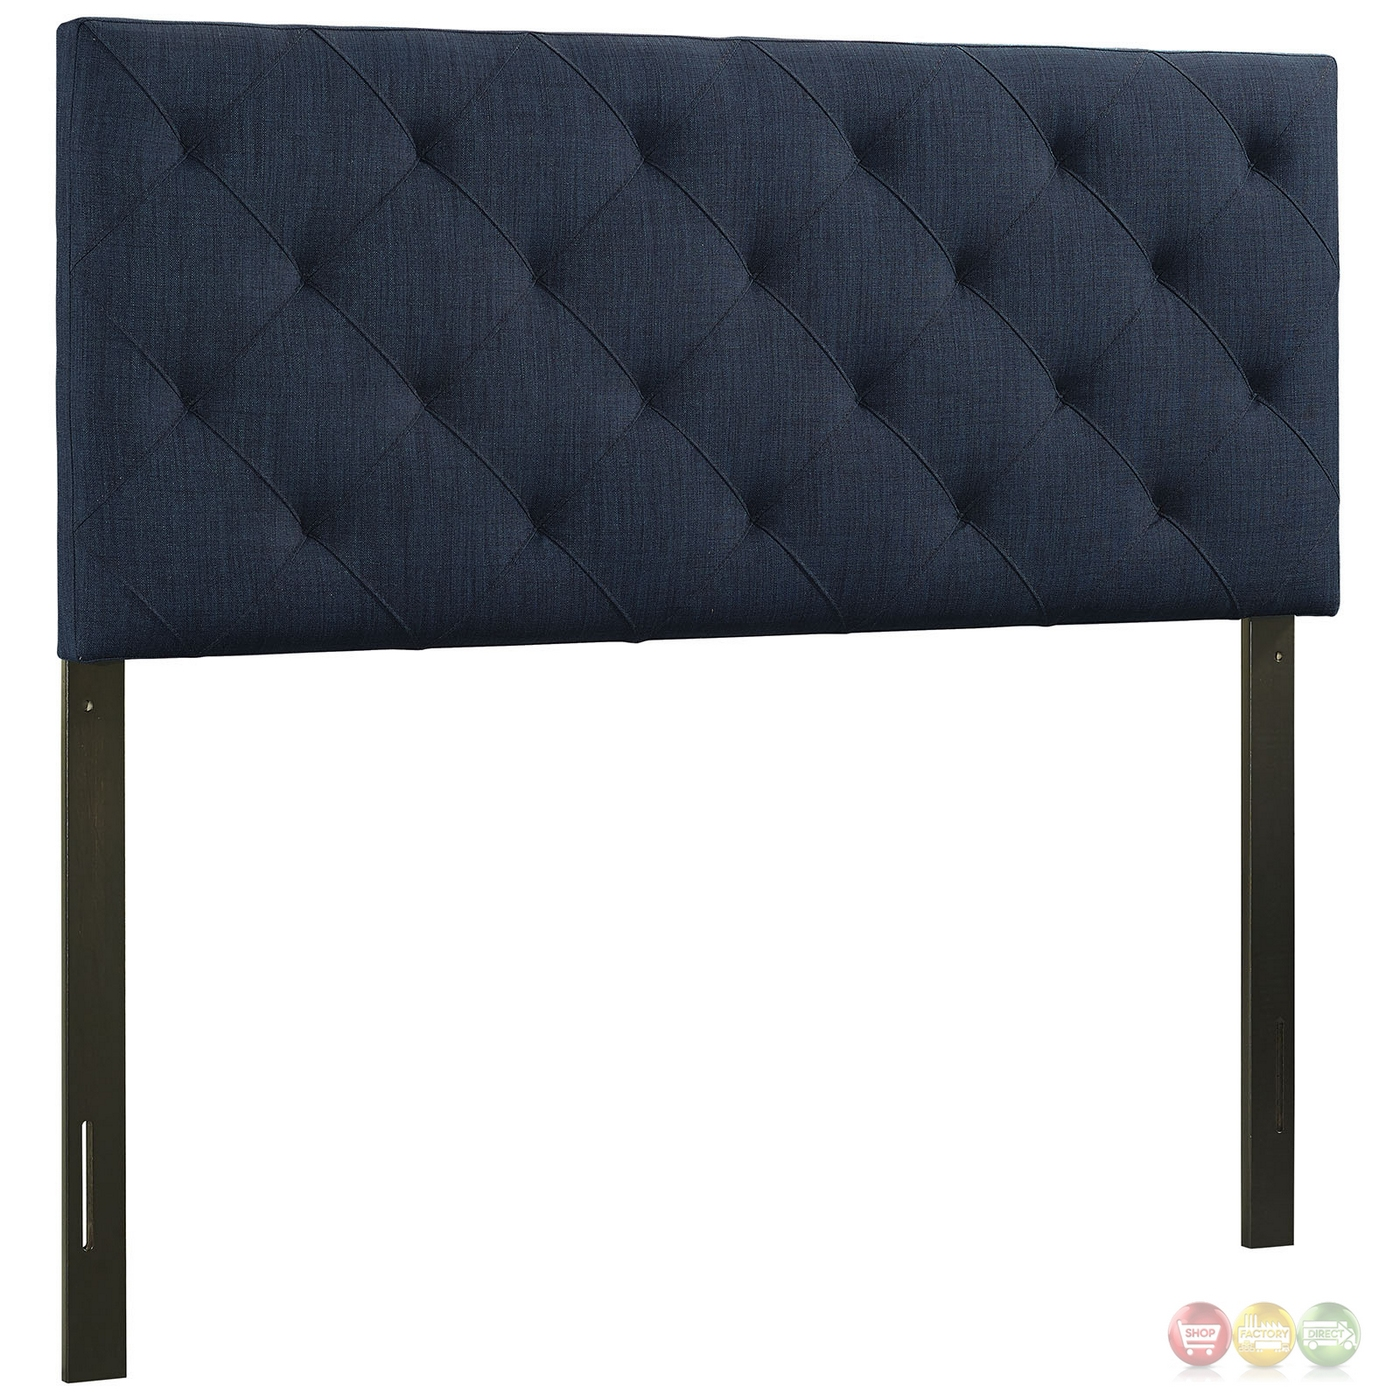 Theodore twin tufted diamond pattern fabric headboard navy for Headboard patterns